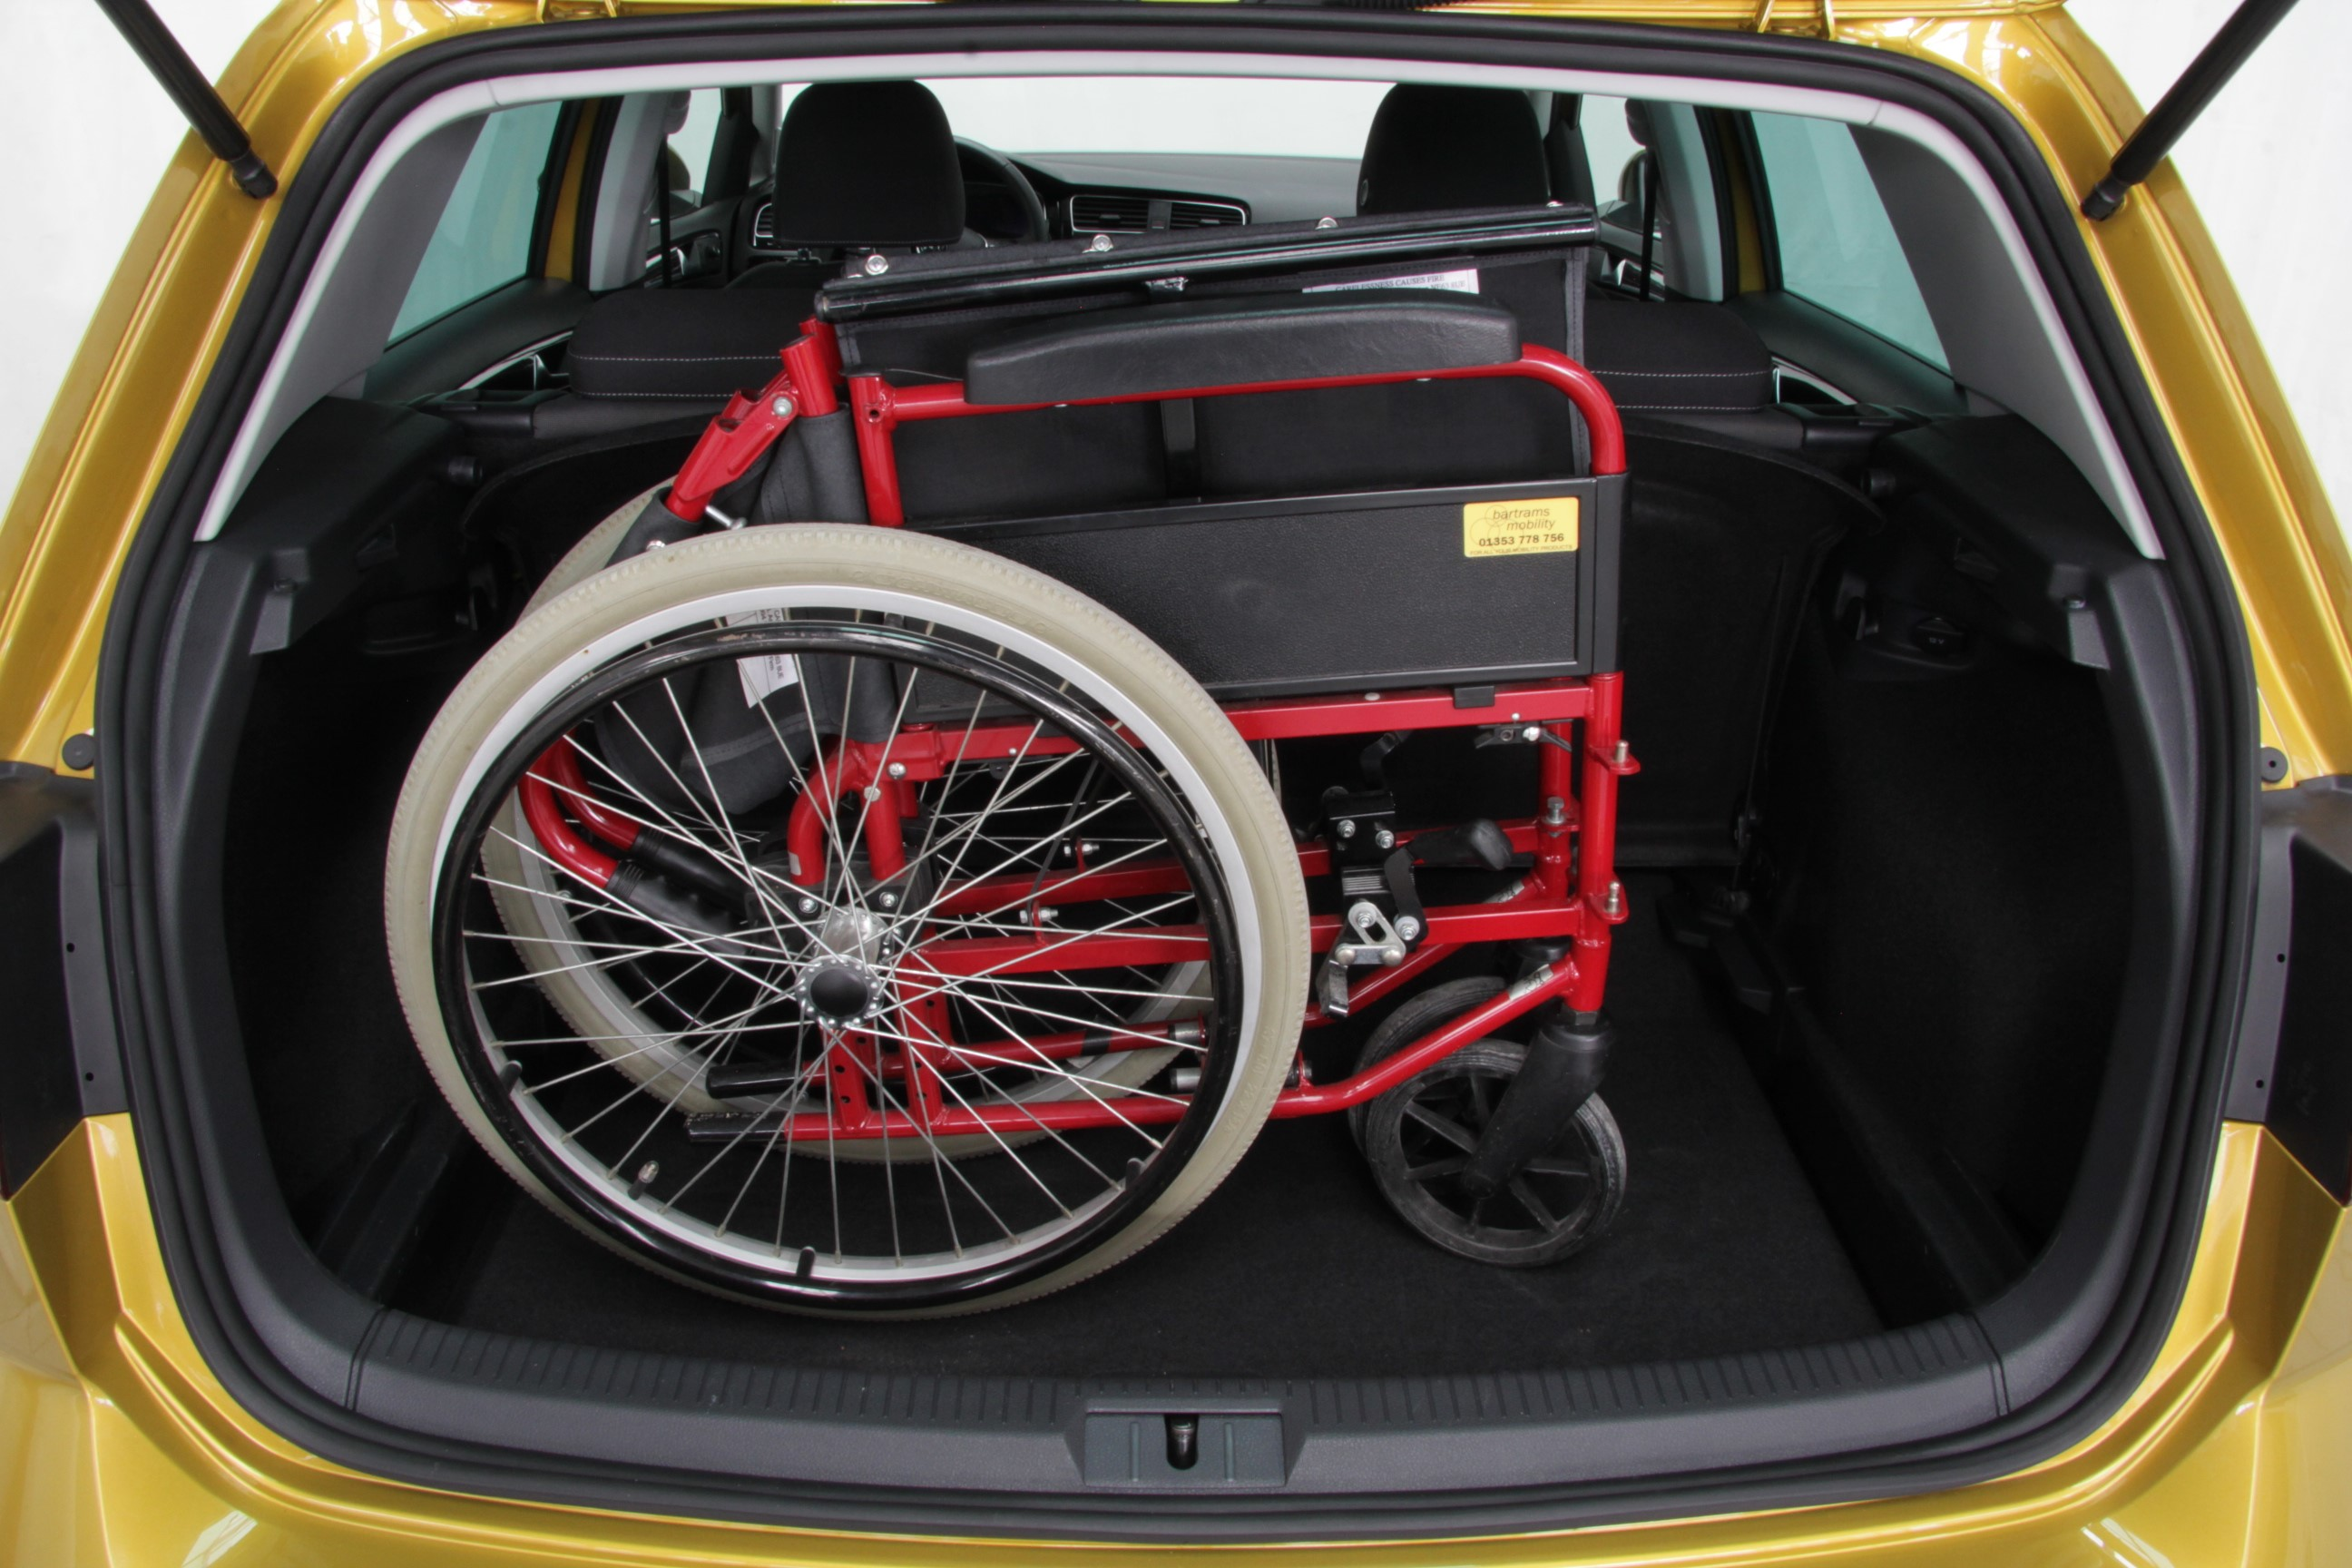 Picture of a folded wheelchair in a car boot